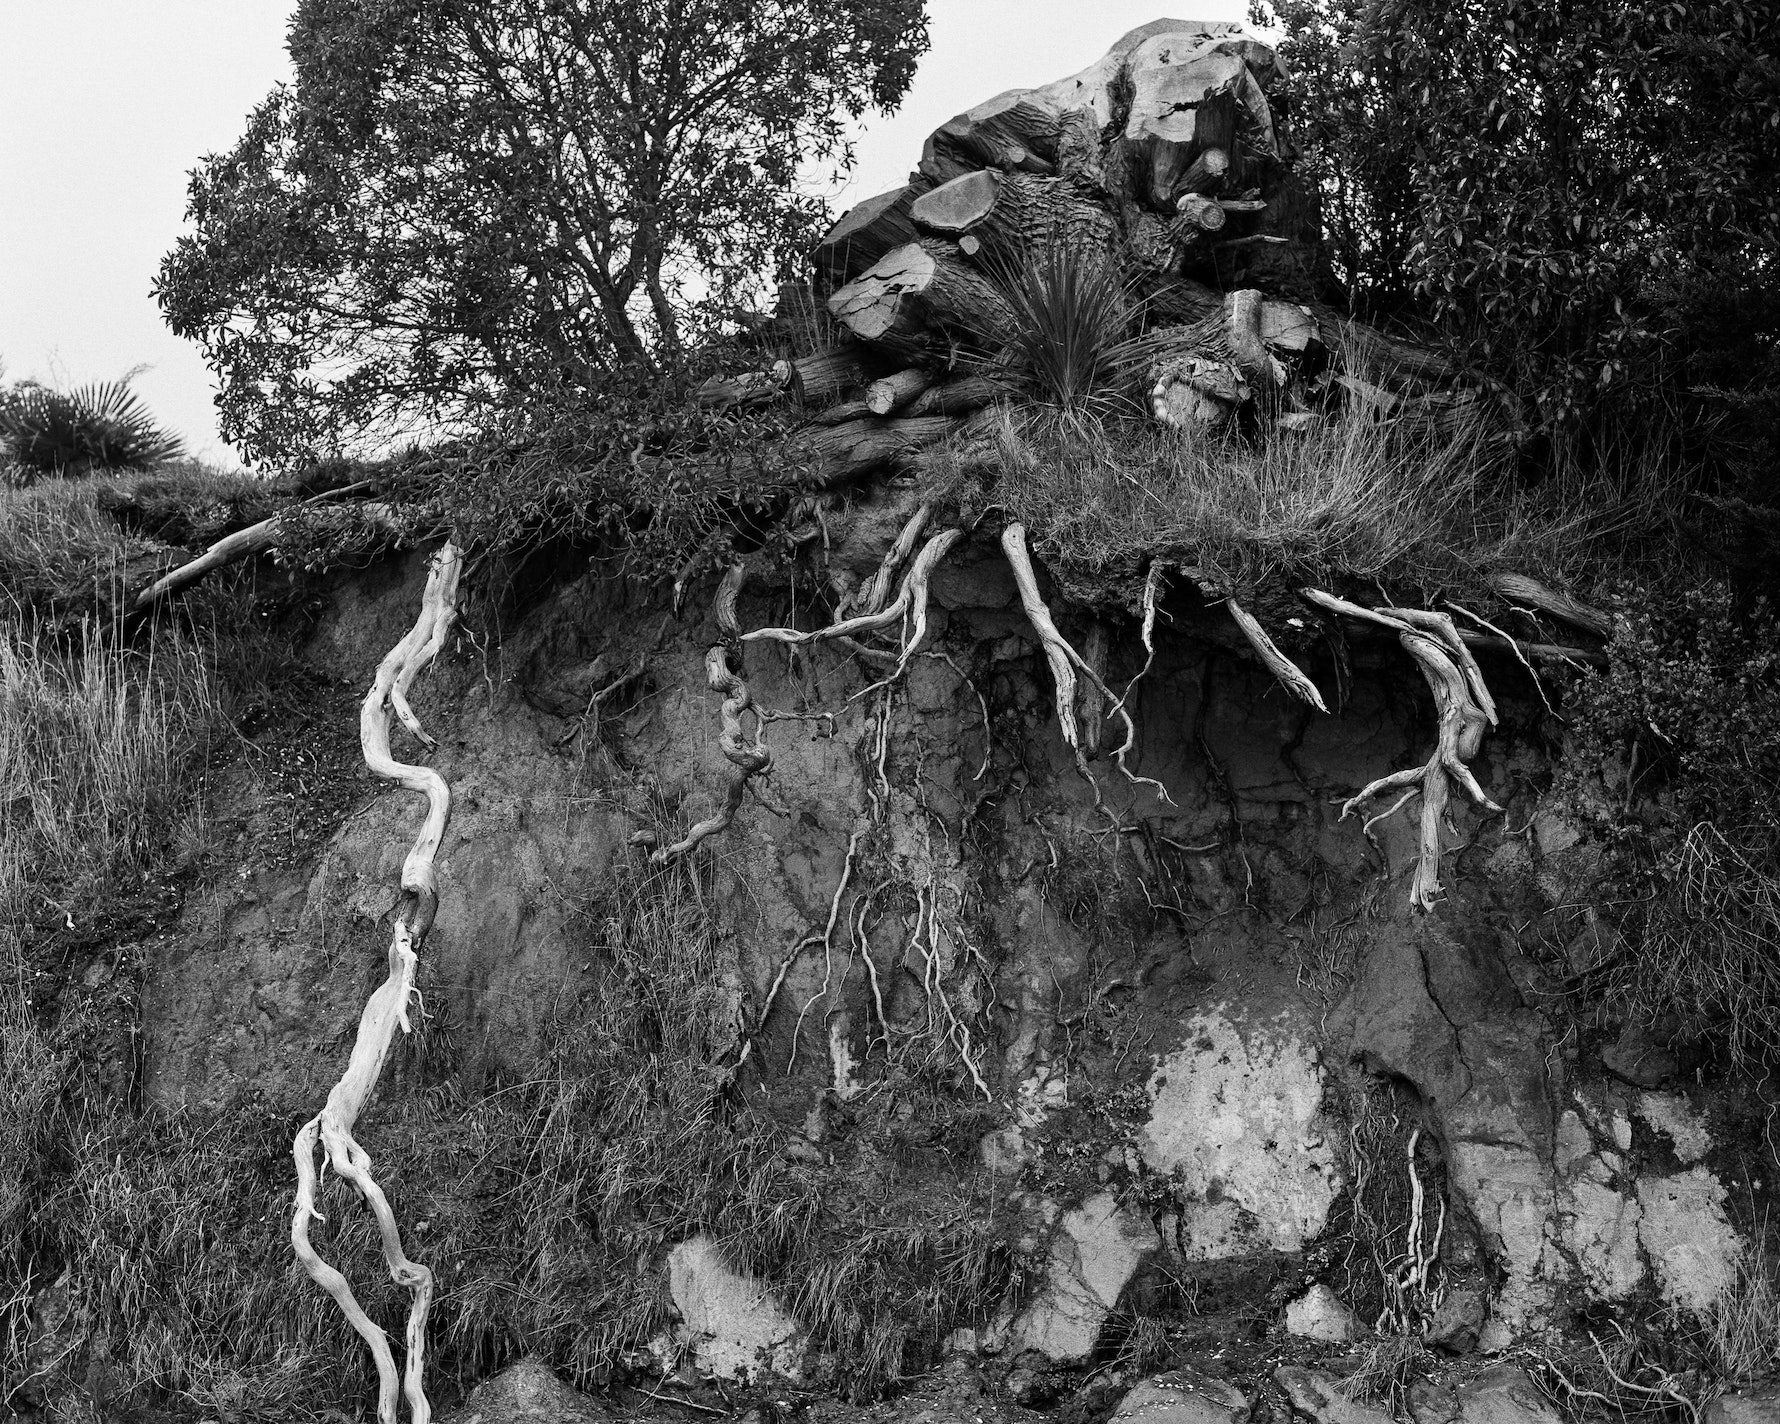 Roots over-hanging the cliff edge at Rāpaki beach.